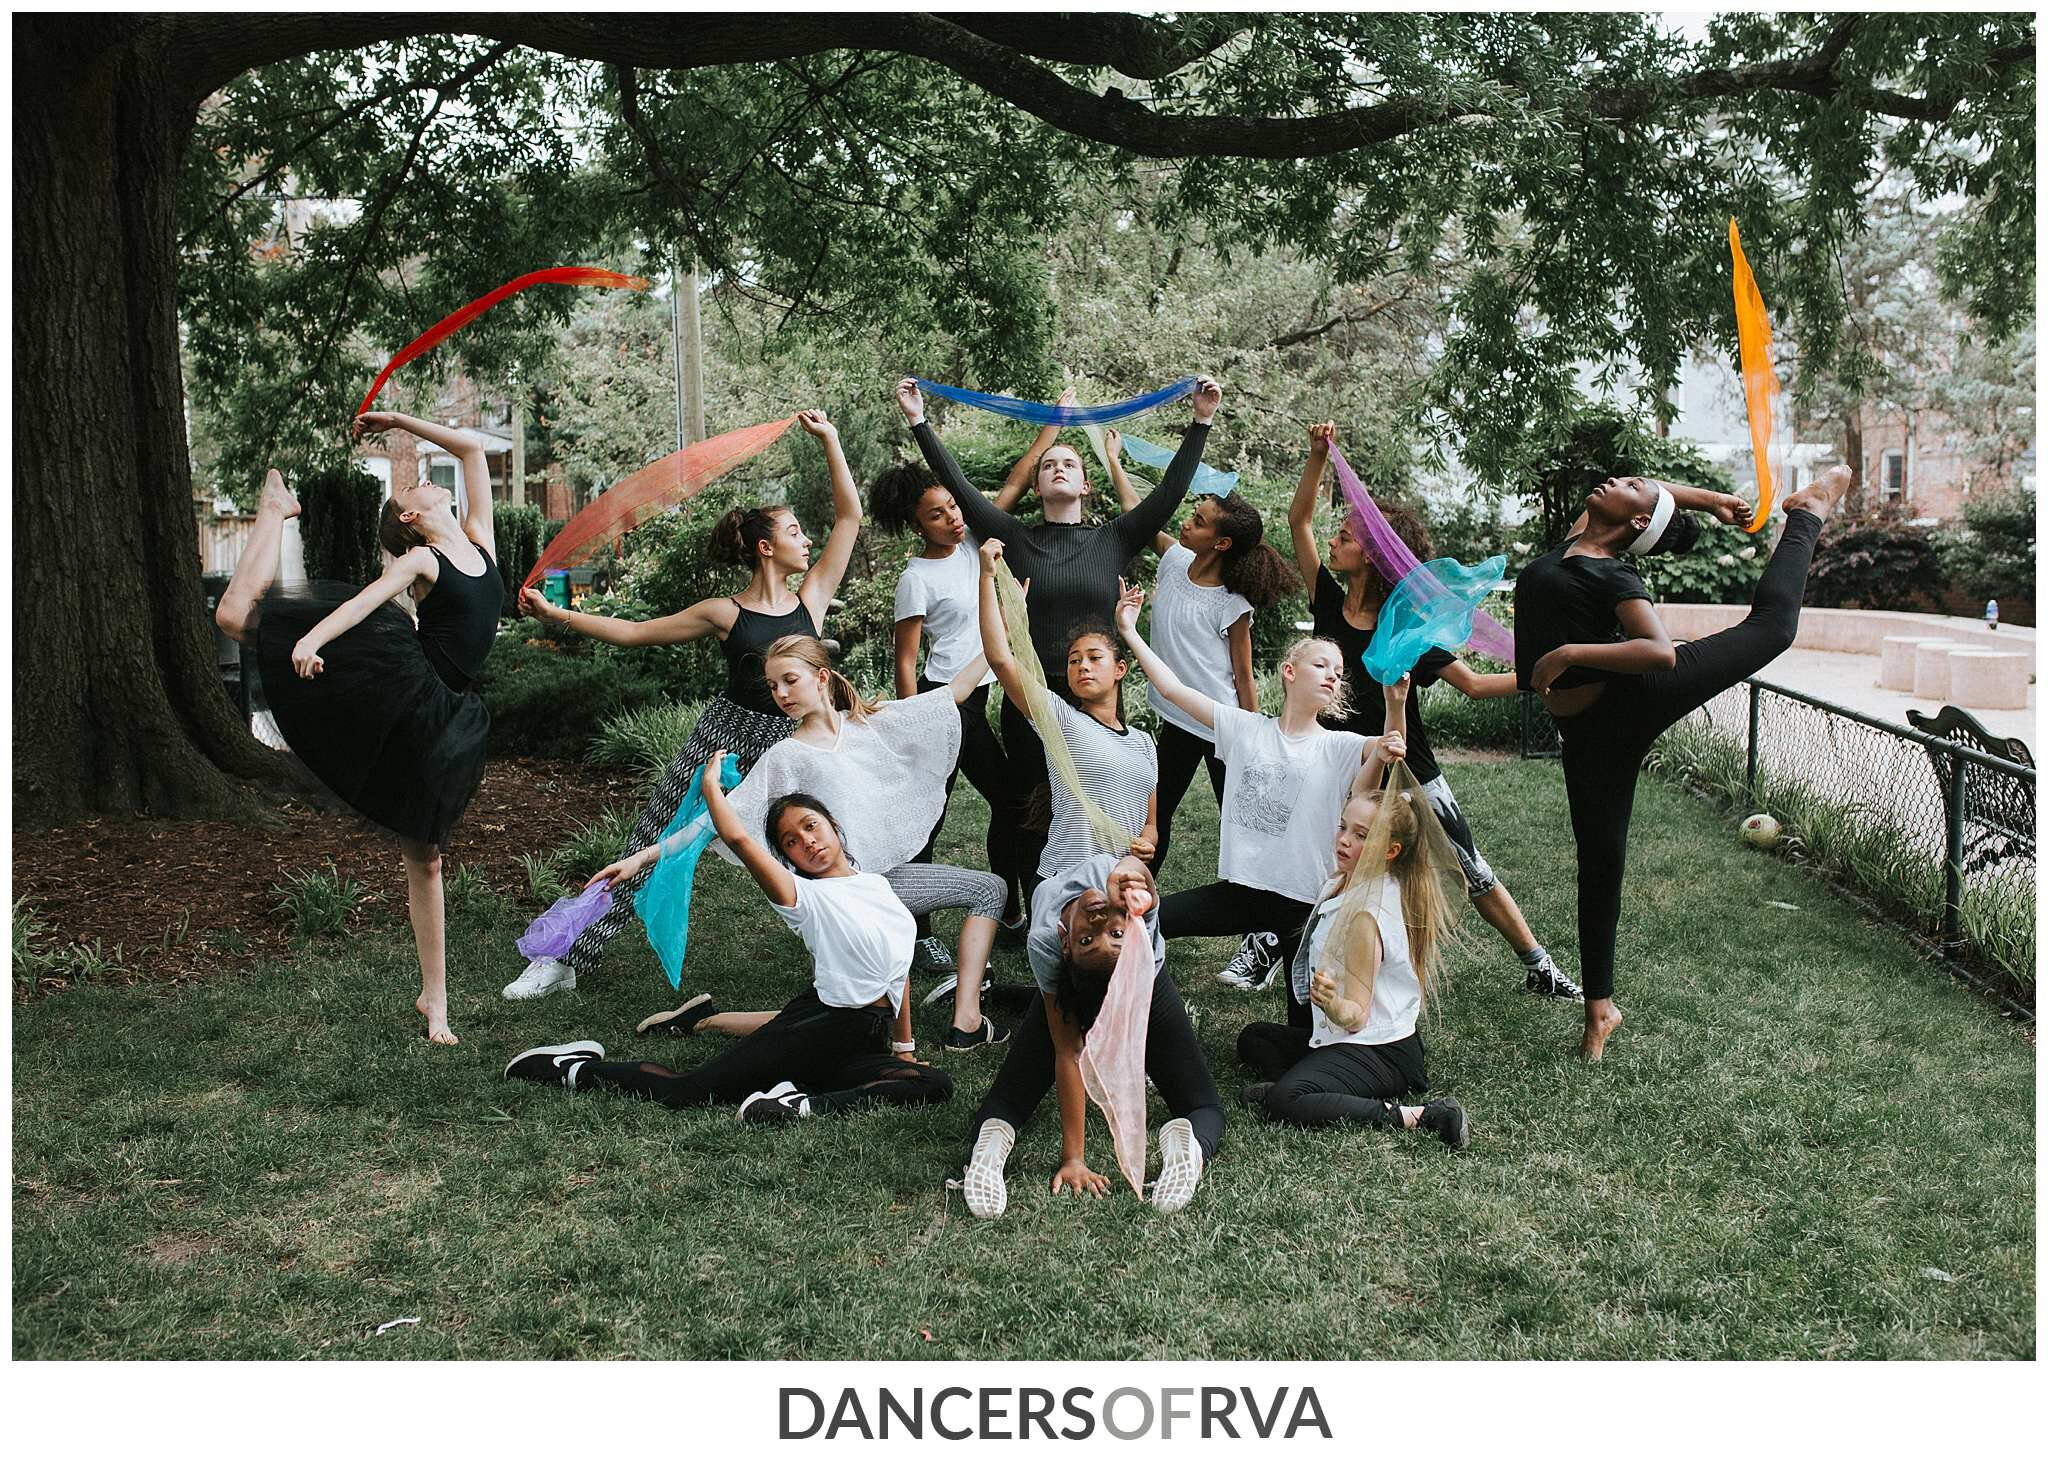 Dancers-of-RVA-Binford-Turnaround-for-the-arts-Richmond-Dance-Photographer_0013.jpg